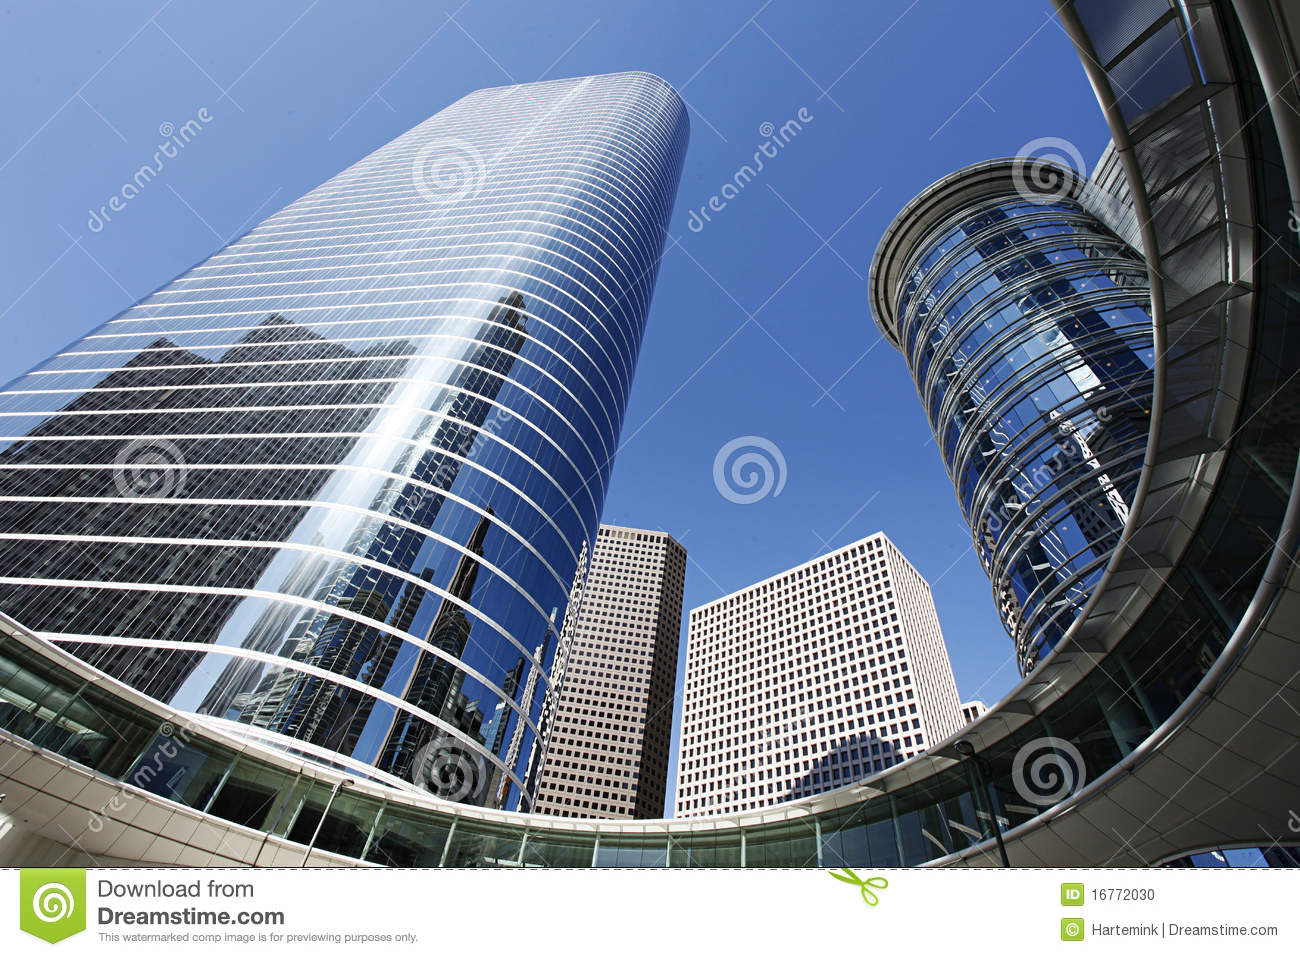 modern architecture in houston downtown stock photo - image: 16772030